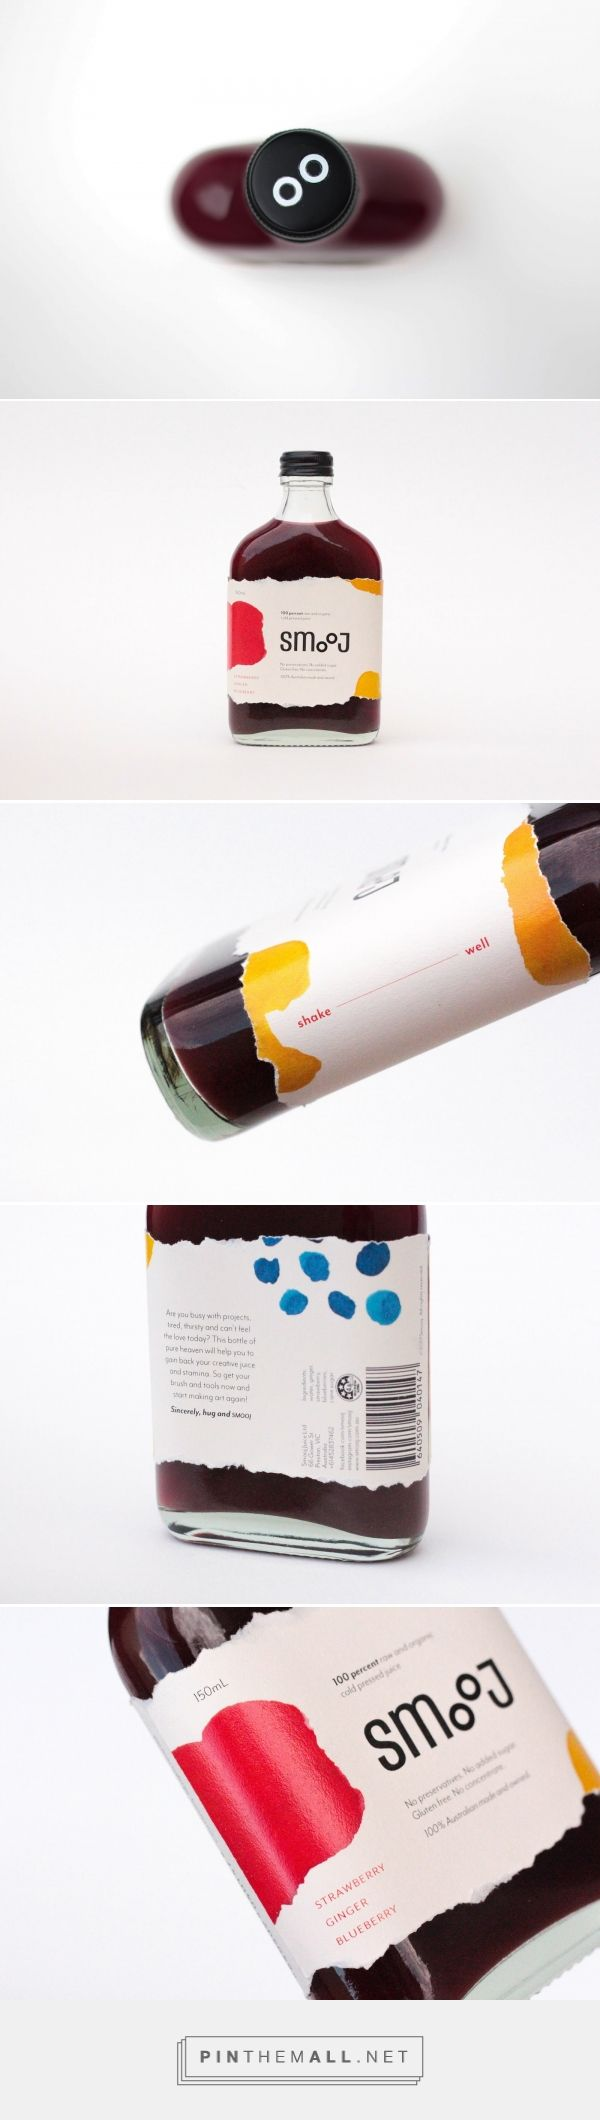 Smooj Cold Pressed Juice (Student Project) - Packaging of the World - Creative Package Design Gallery - http://www.packagingoftheworld.com/2017/08/smooj-cold-pressed-juice-student-project.html